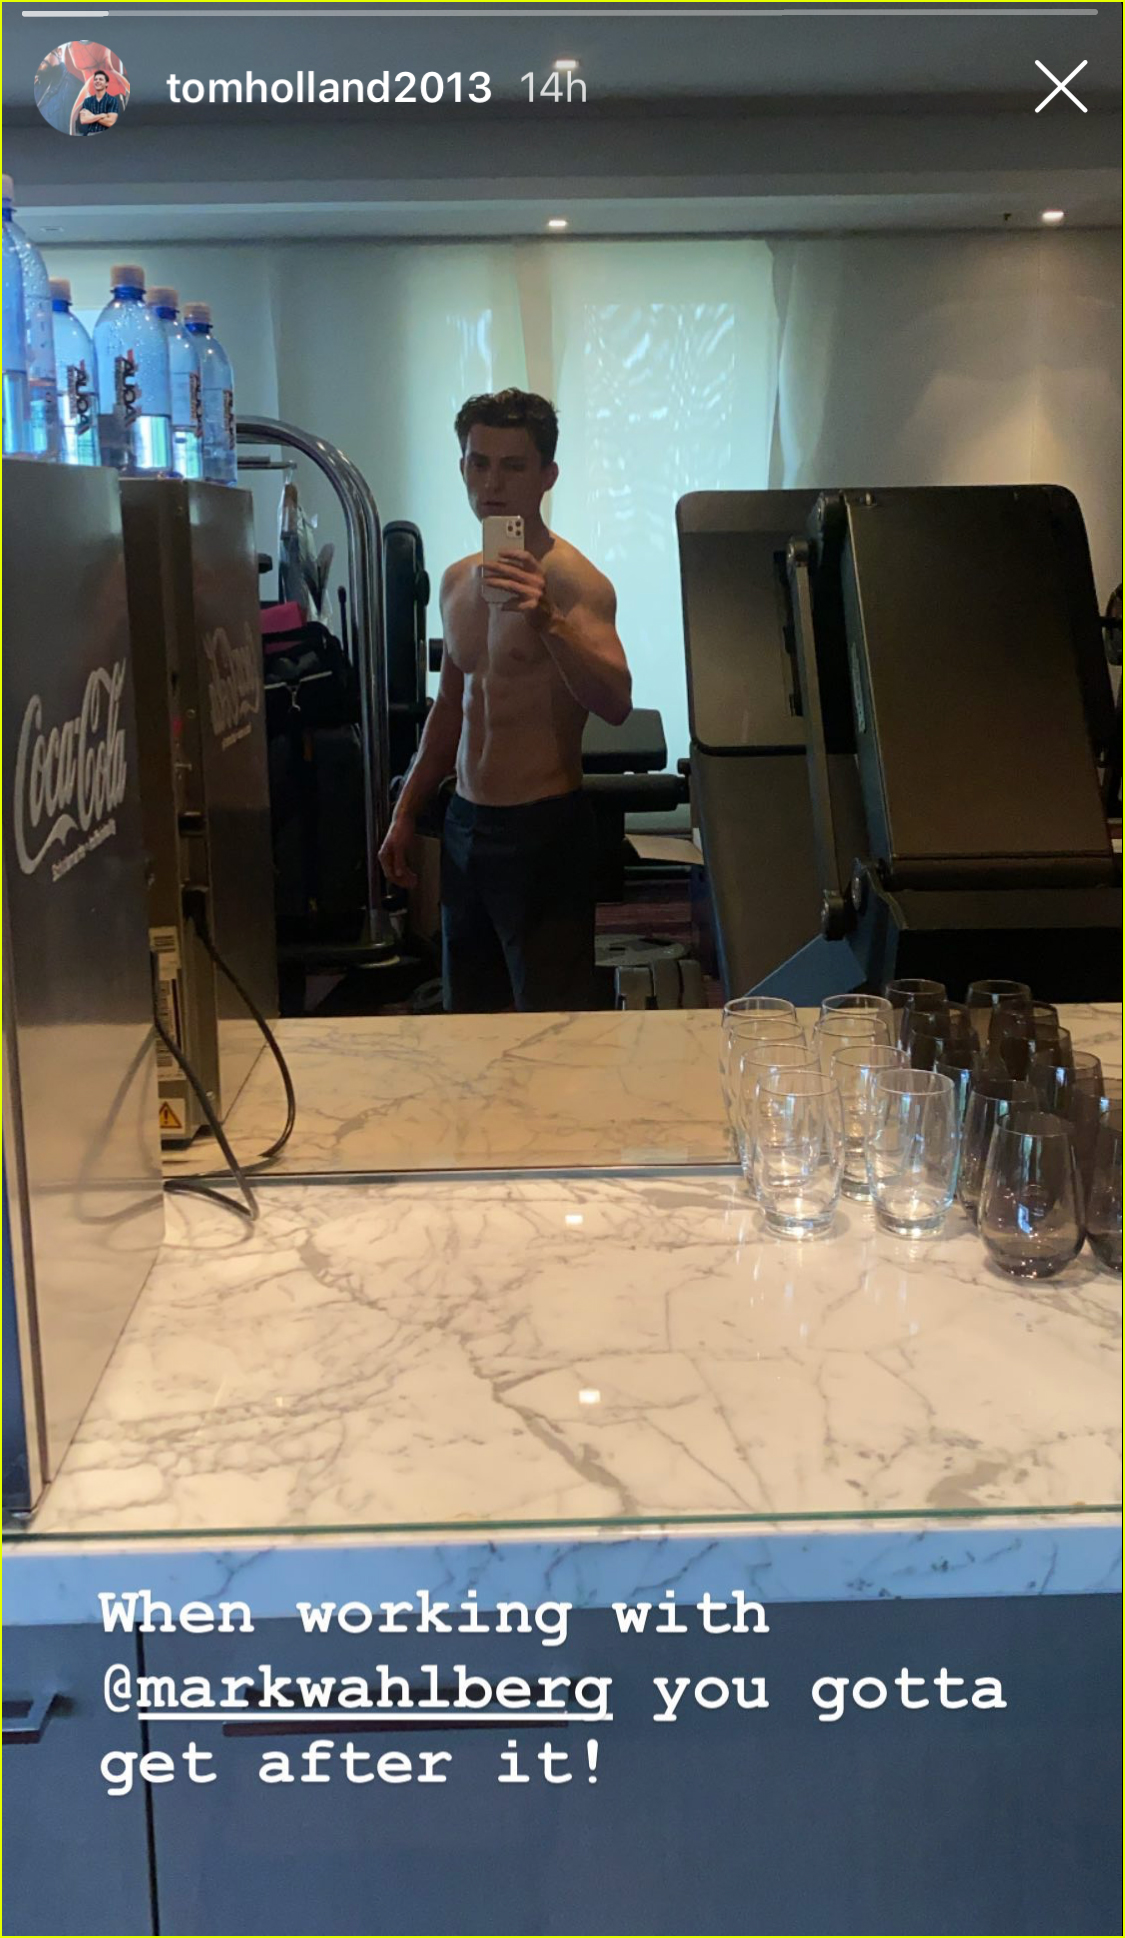 tom holland looks ripped in new shirtless pic